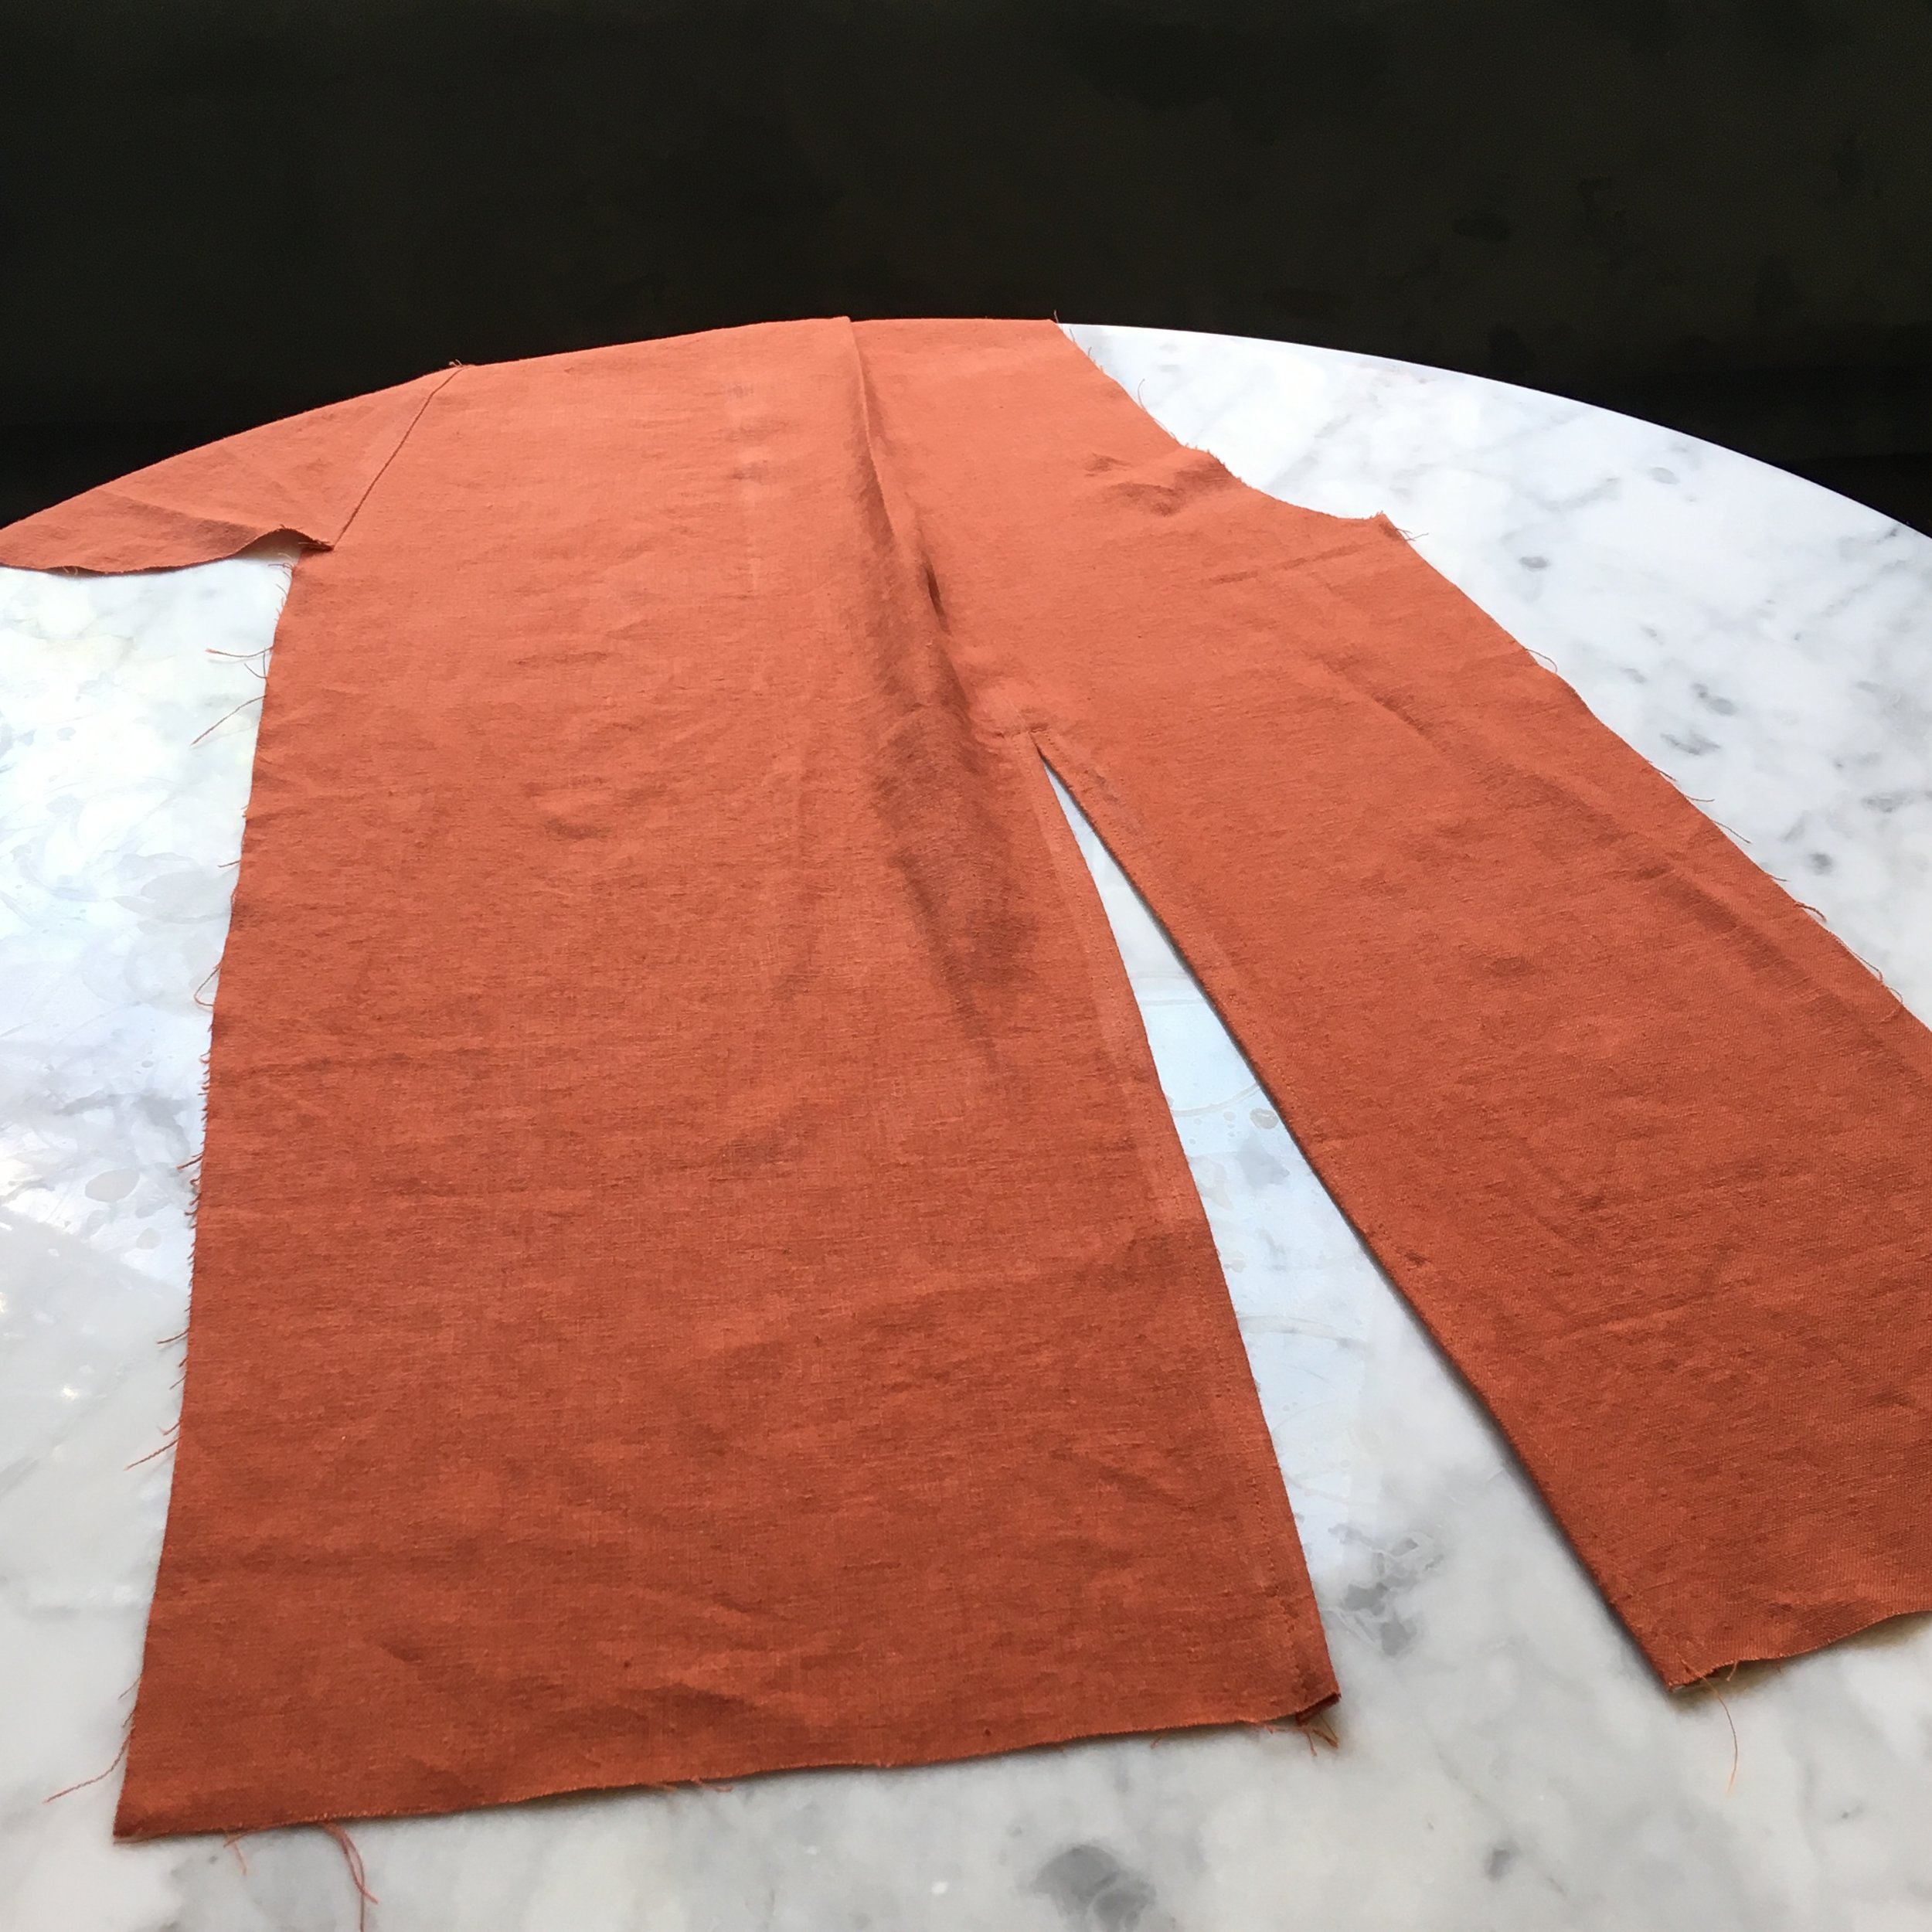 This is the completed front section of the pant that has a chic slip up the front reinforced by some clean top stitching.